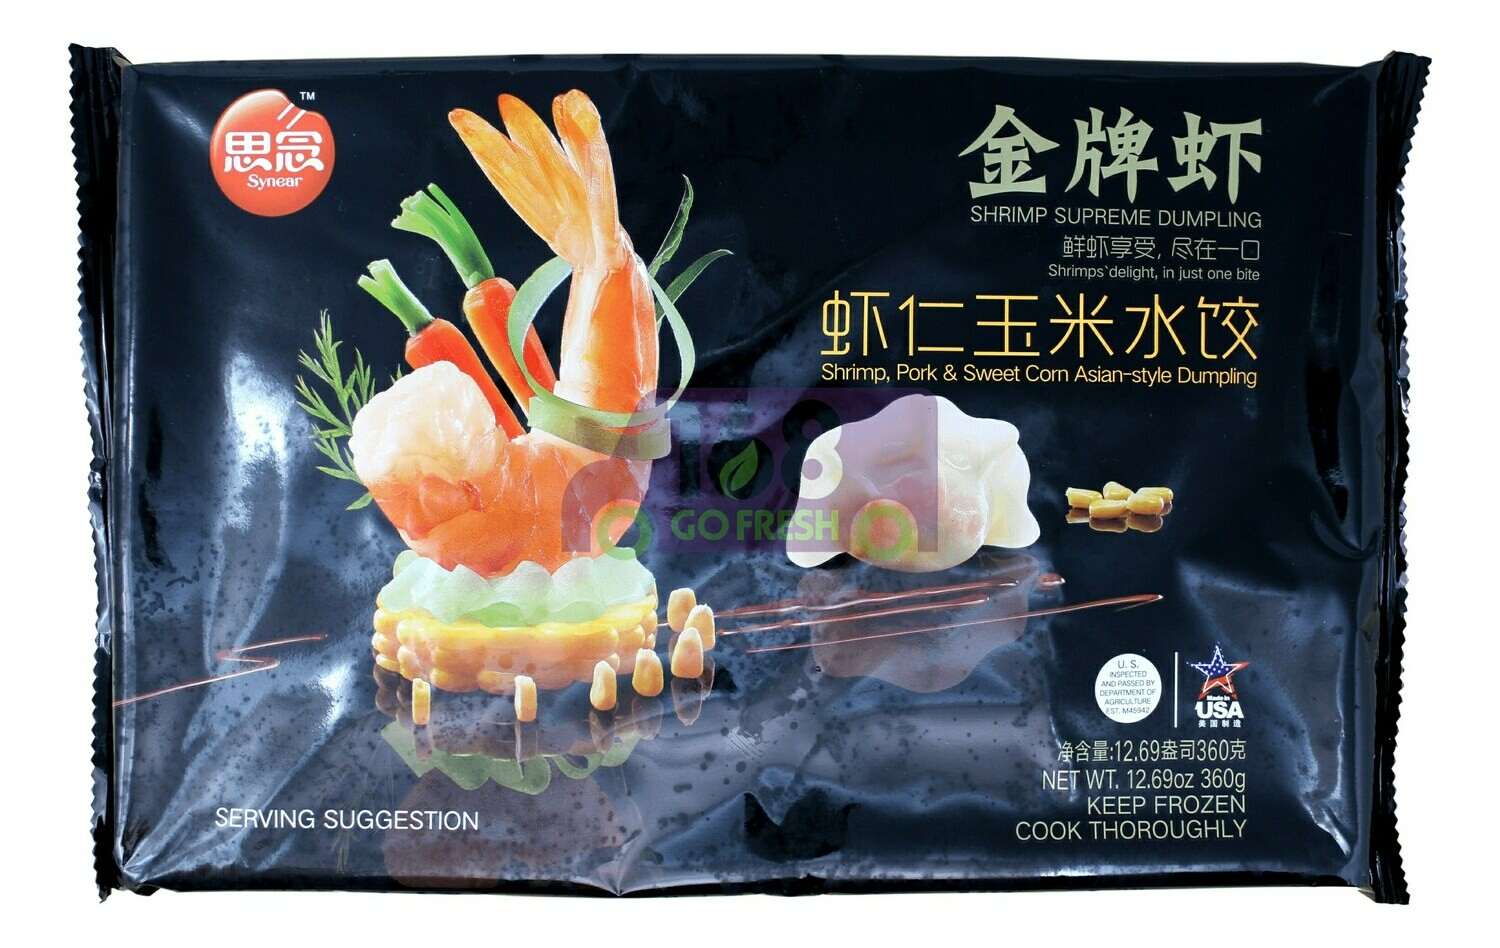 SYNEAR SHRIMP PORK&SWEETCORN ASIAN-STYLE DUMPLING 思念 金牌虾 虾仁玉米水饺(12.69OZ)